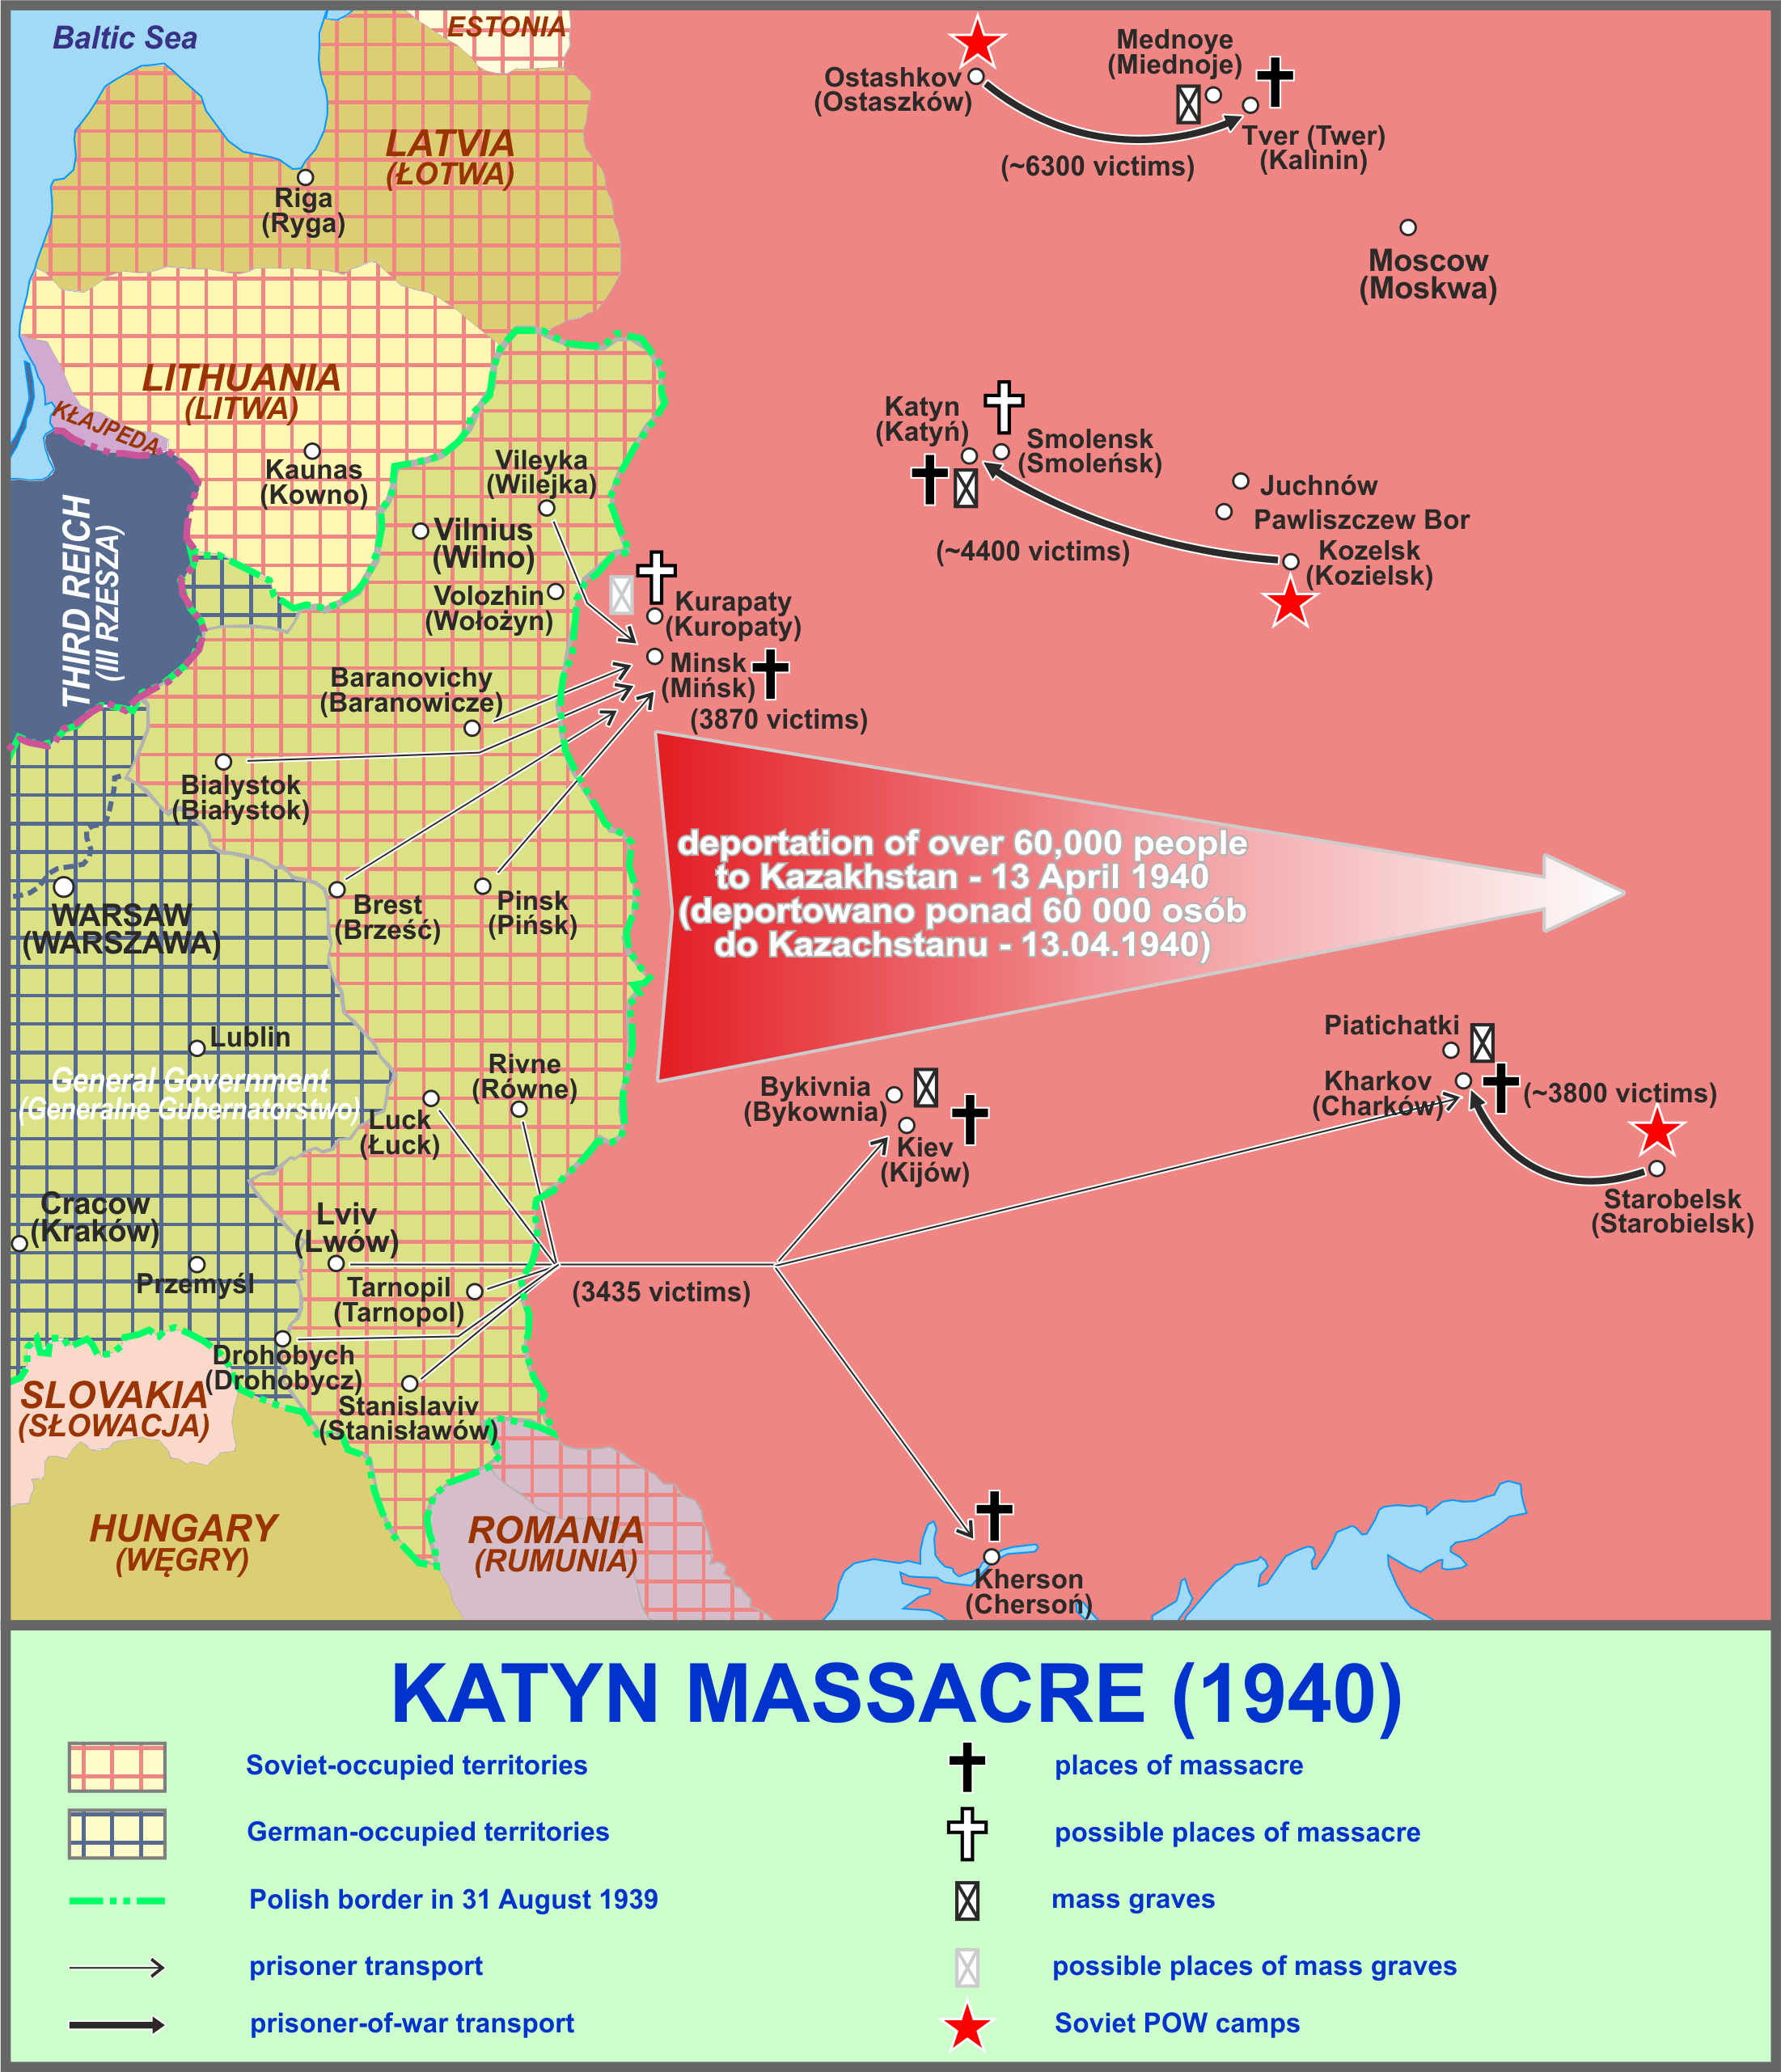 http://upload.wikimedia.org/wikipedia/commons/e/e2/Katyn_a.png